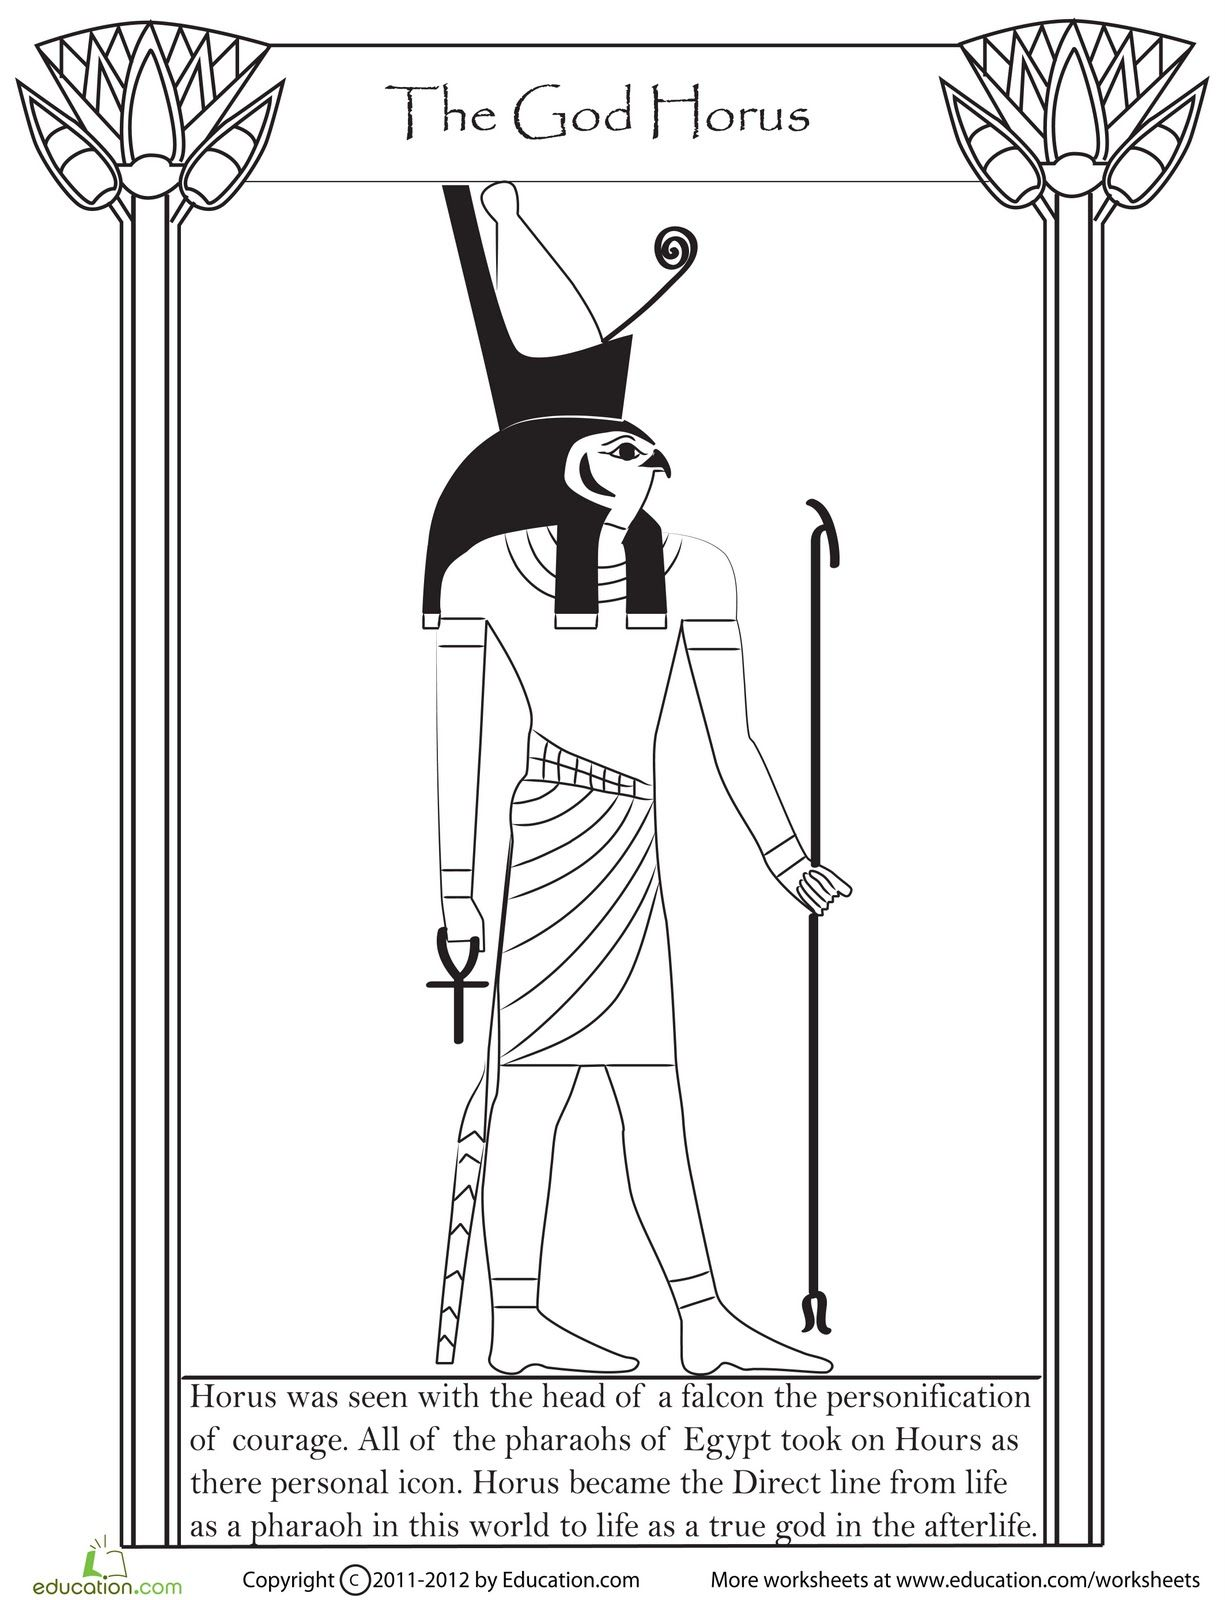 The God Horus